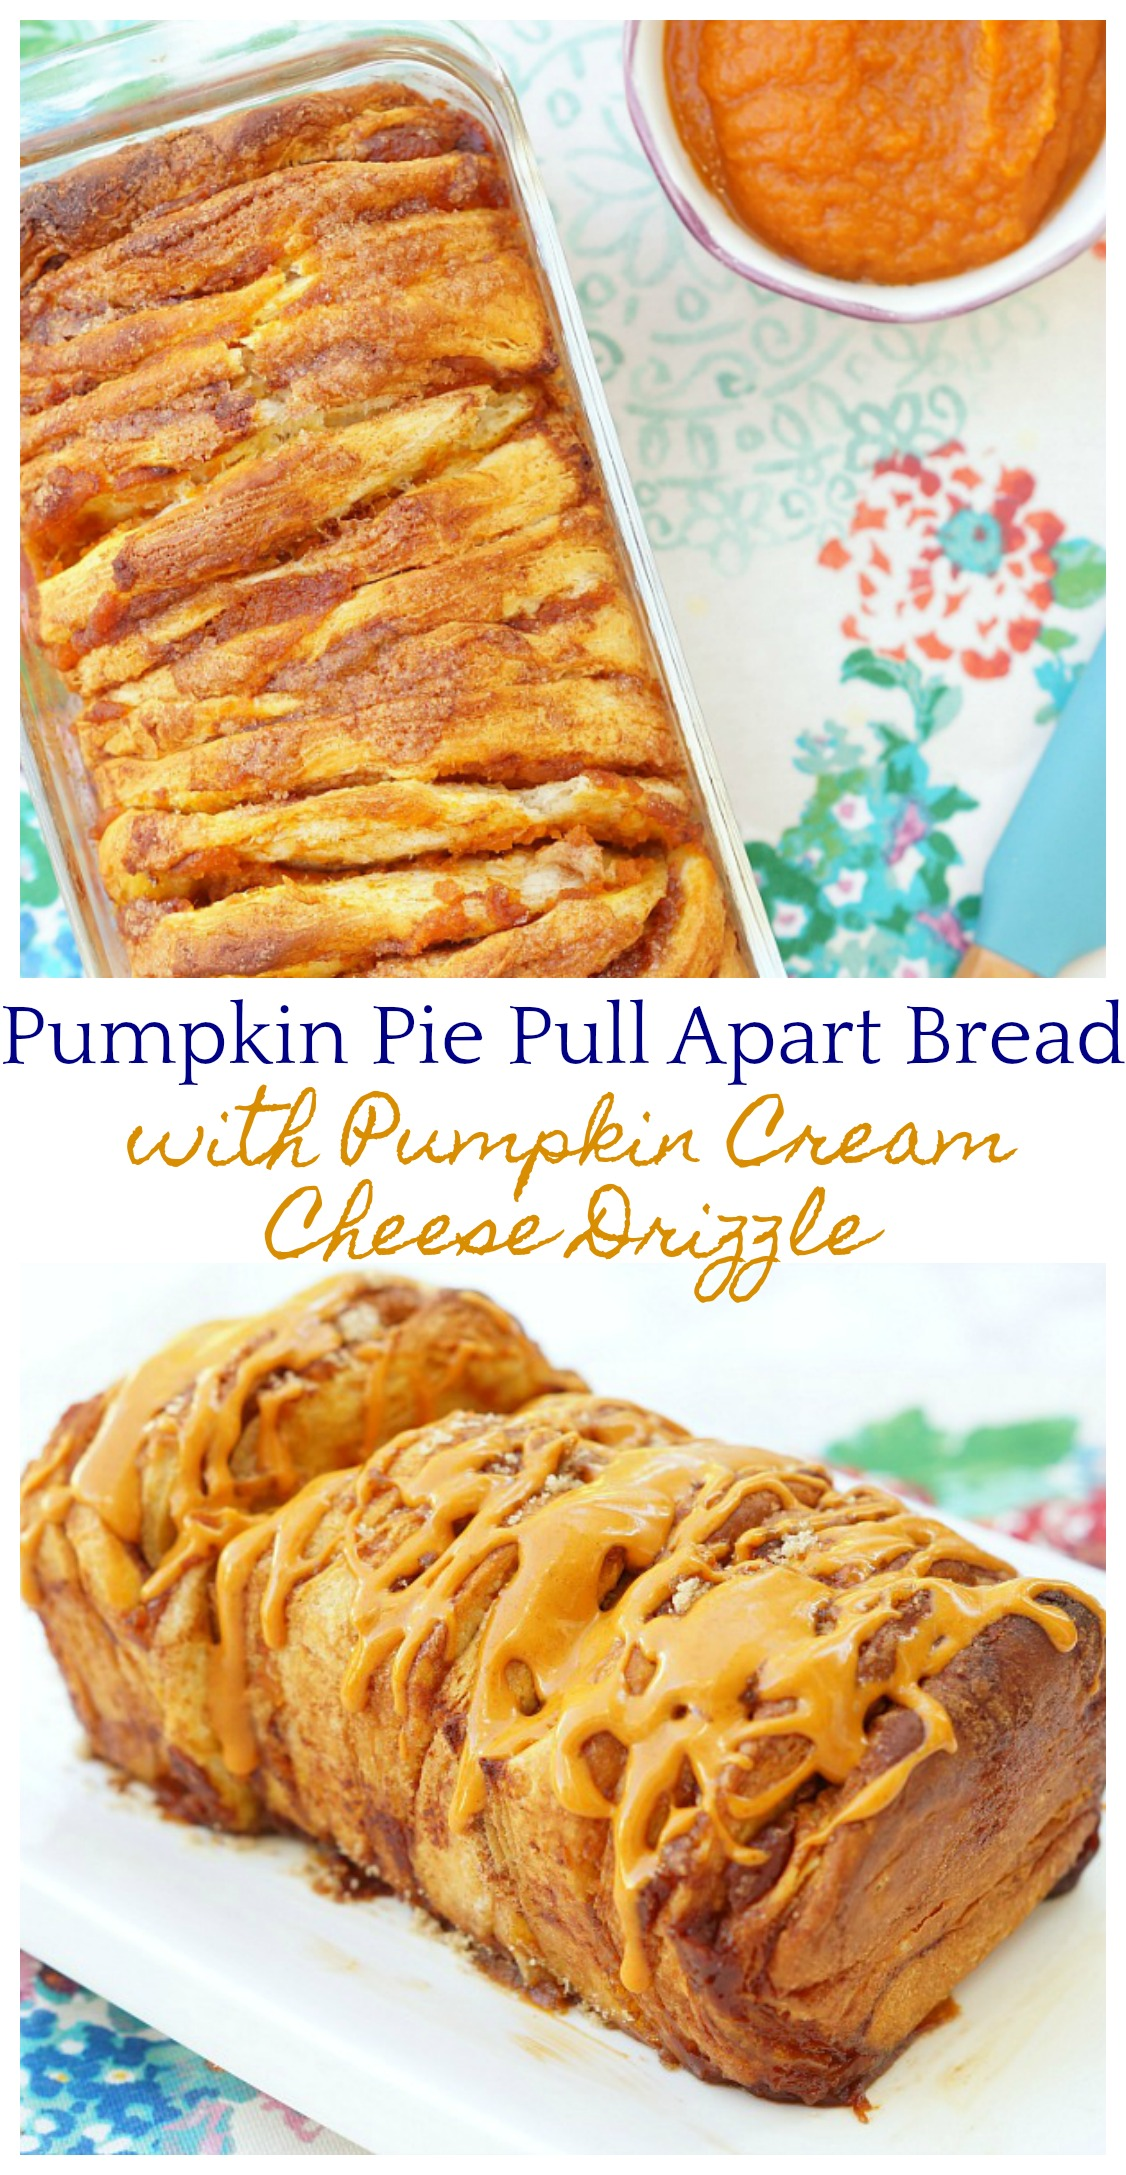 Pumpkin Pie Pull Apart Bread with Pumpkin Cream Cheese Drizzle, the most delicious bread for Thanksgiving morning!